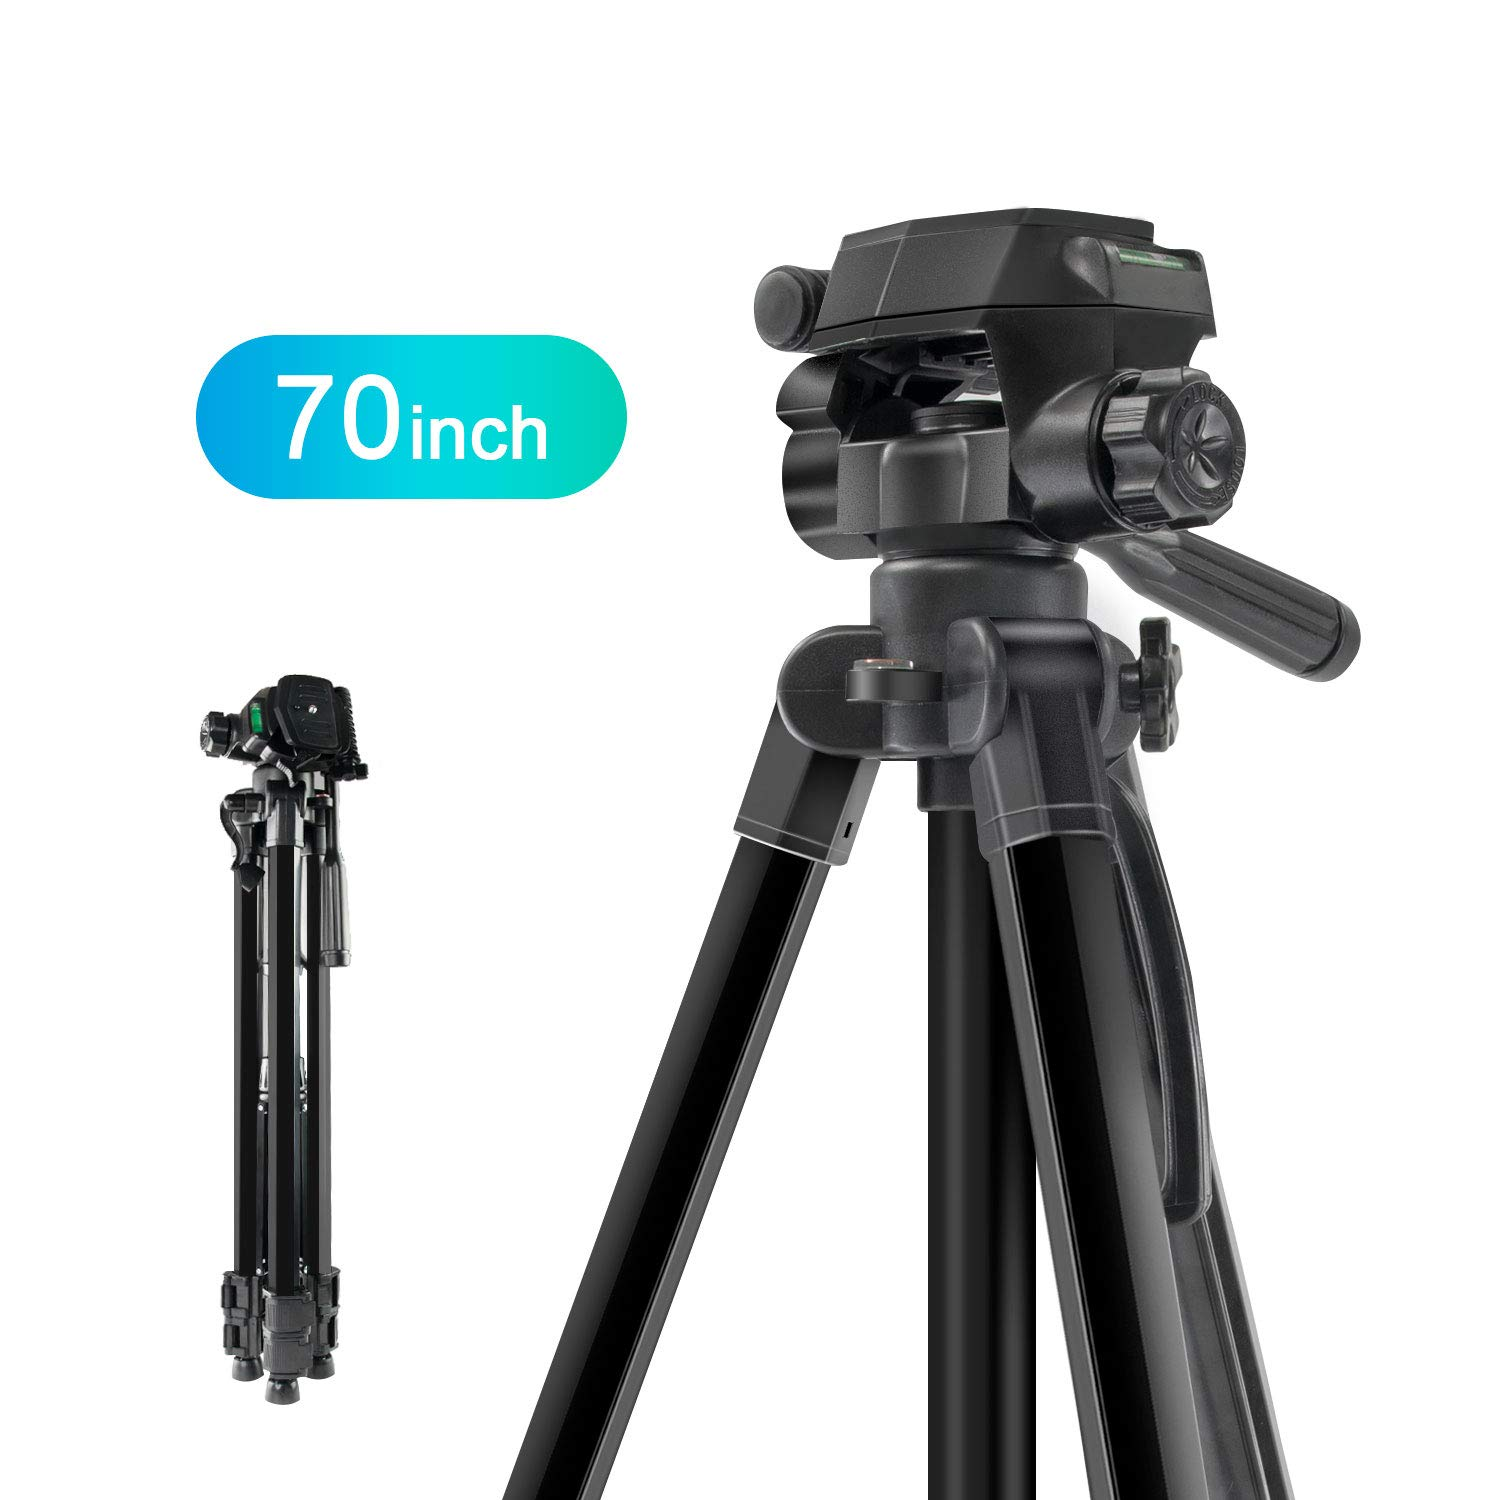 MOUNTDOG Camera Tripod 70'' Professional DSLR Aluminum Alloy Camera Travel Tripod Stand Light Weight Adjustable for Video Canon Nikon Sony Samsung Olympus Panasonic Pentax by MOUNTDOG